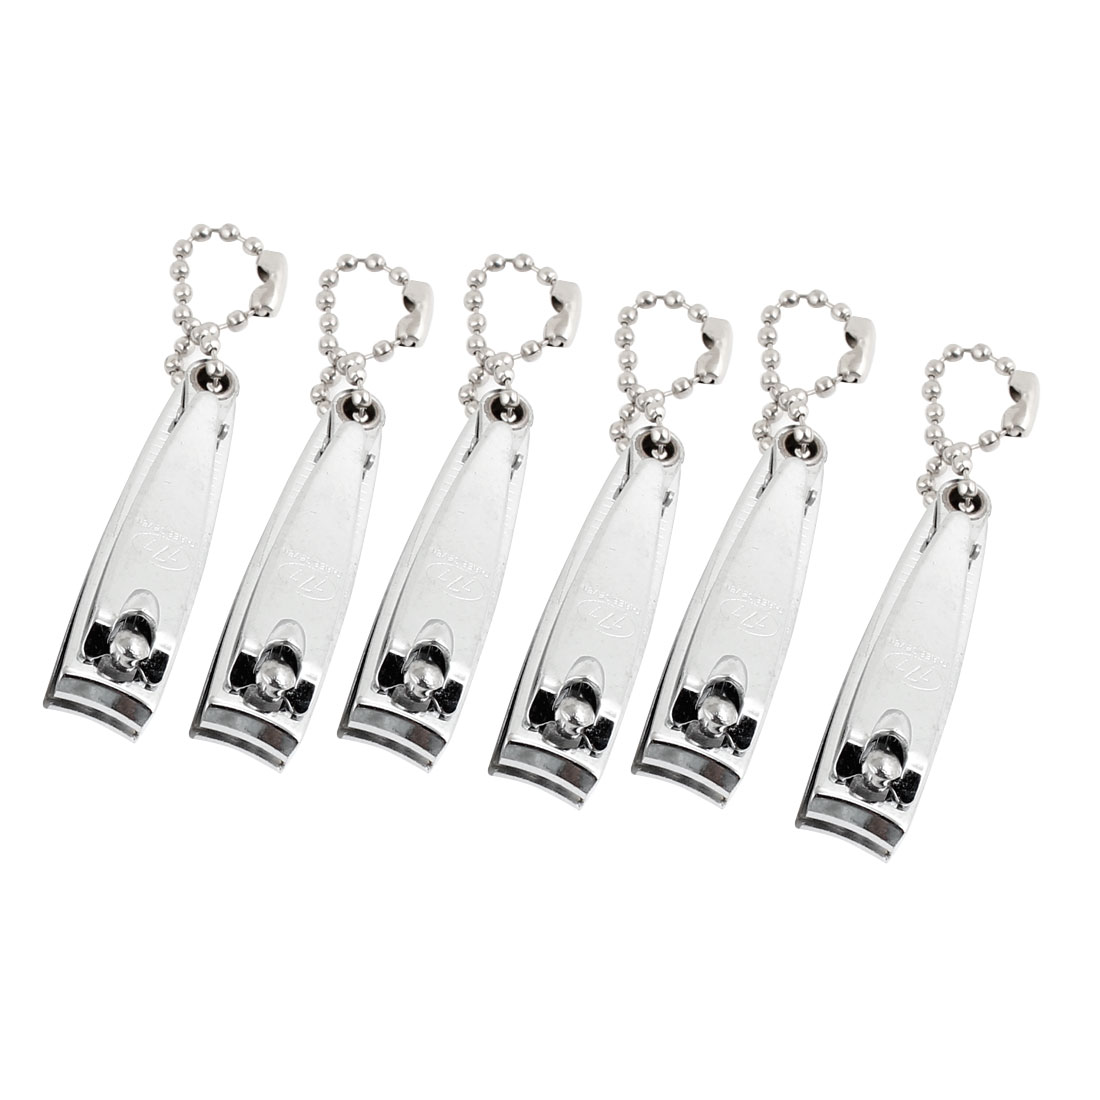 Manicure Beauty Tool Metal Finger Nail Clipper Cutter Silver Tone 6Pcs w Keychain